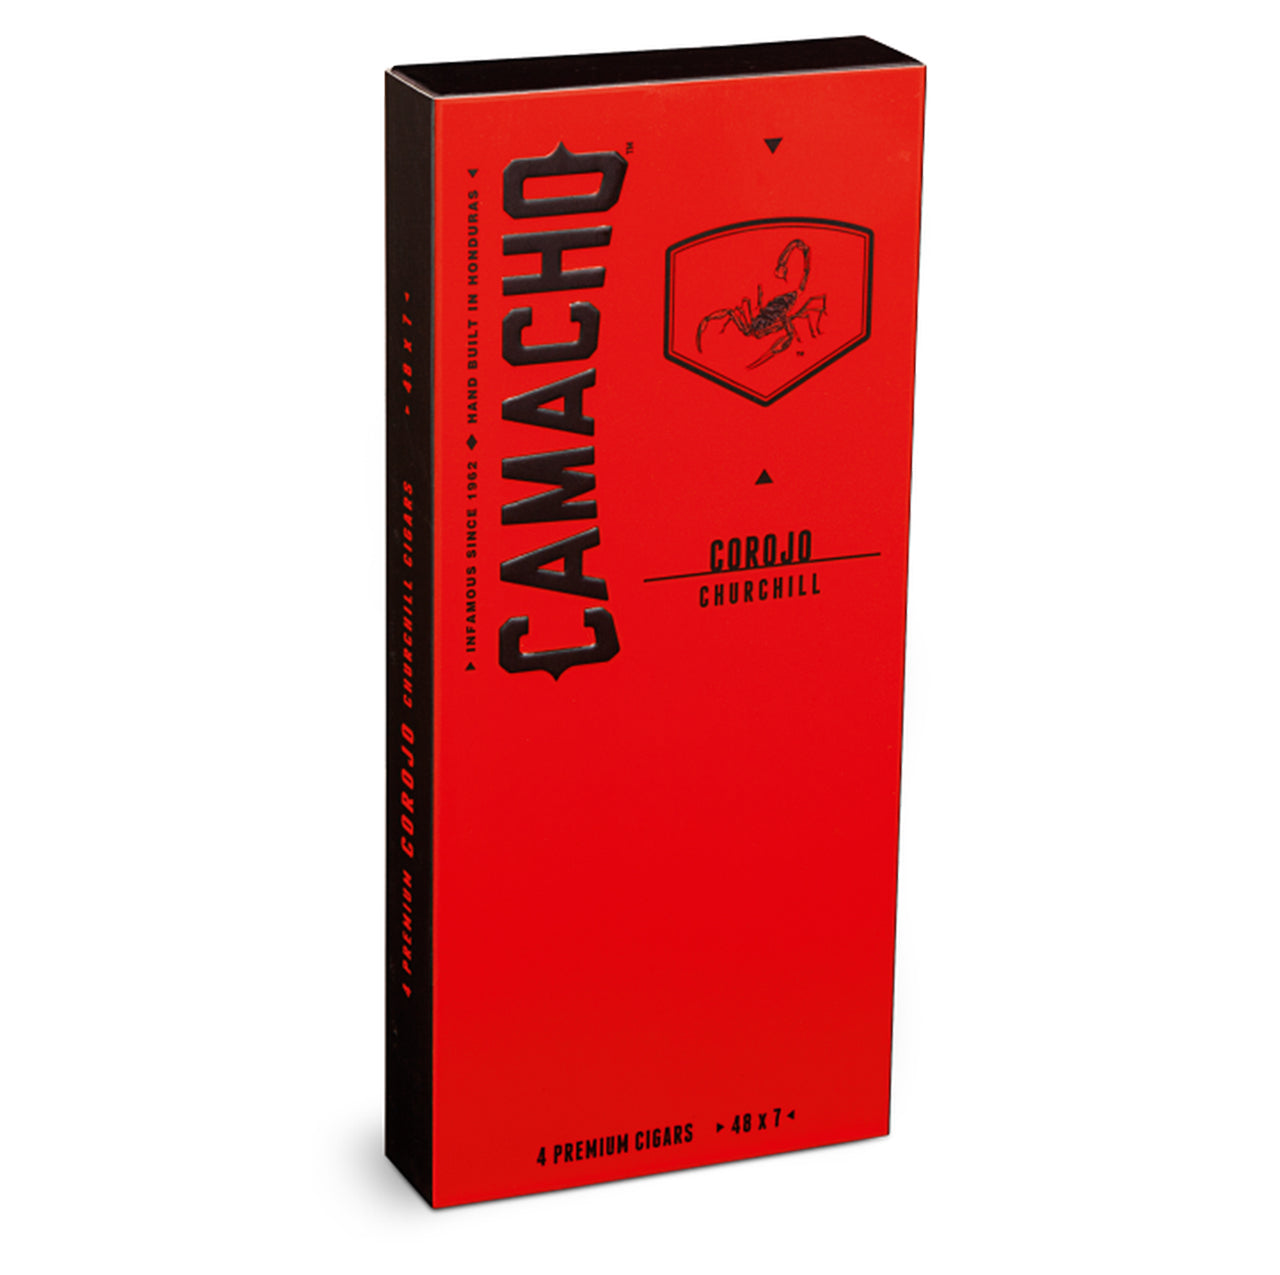 CAMACHO COROJO (Pack and Box cigars)